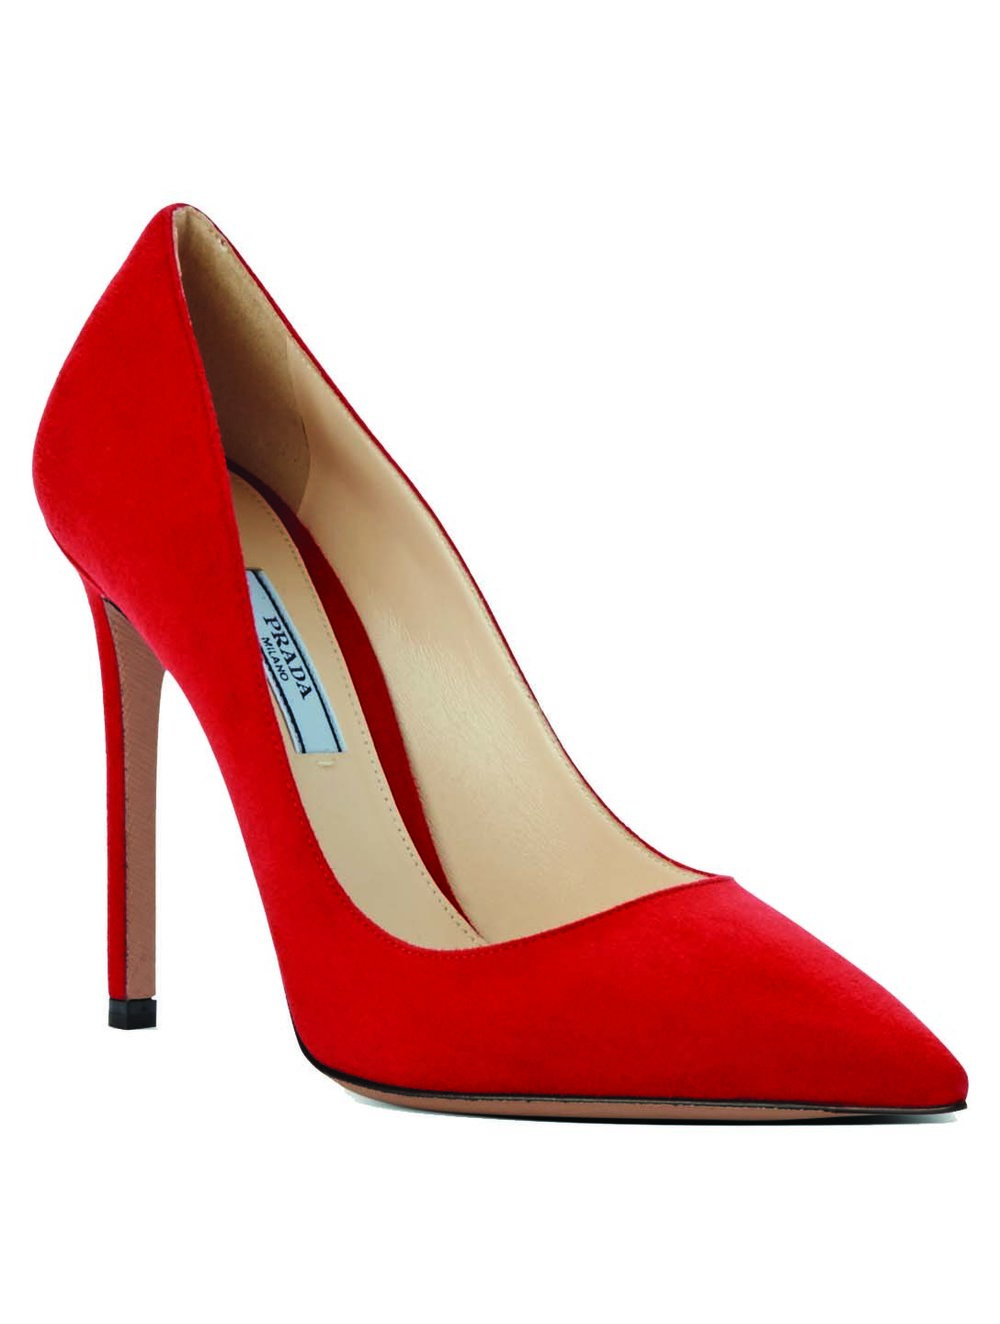 Prada Pumps $740